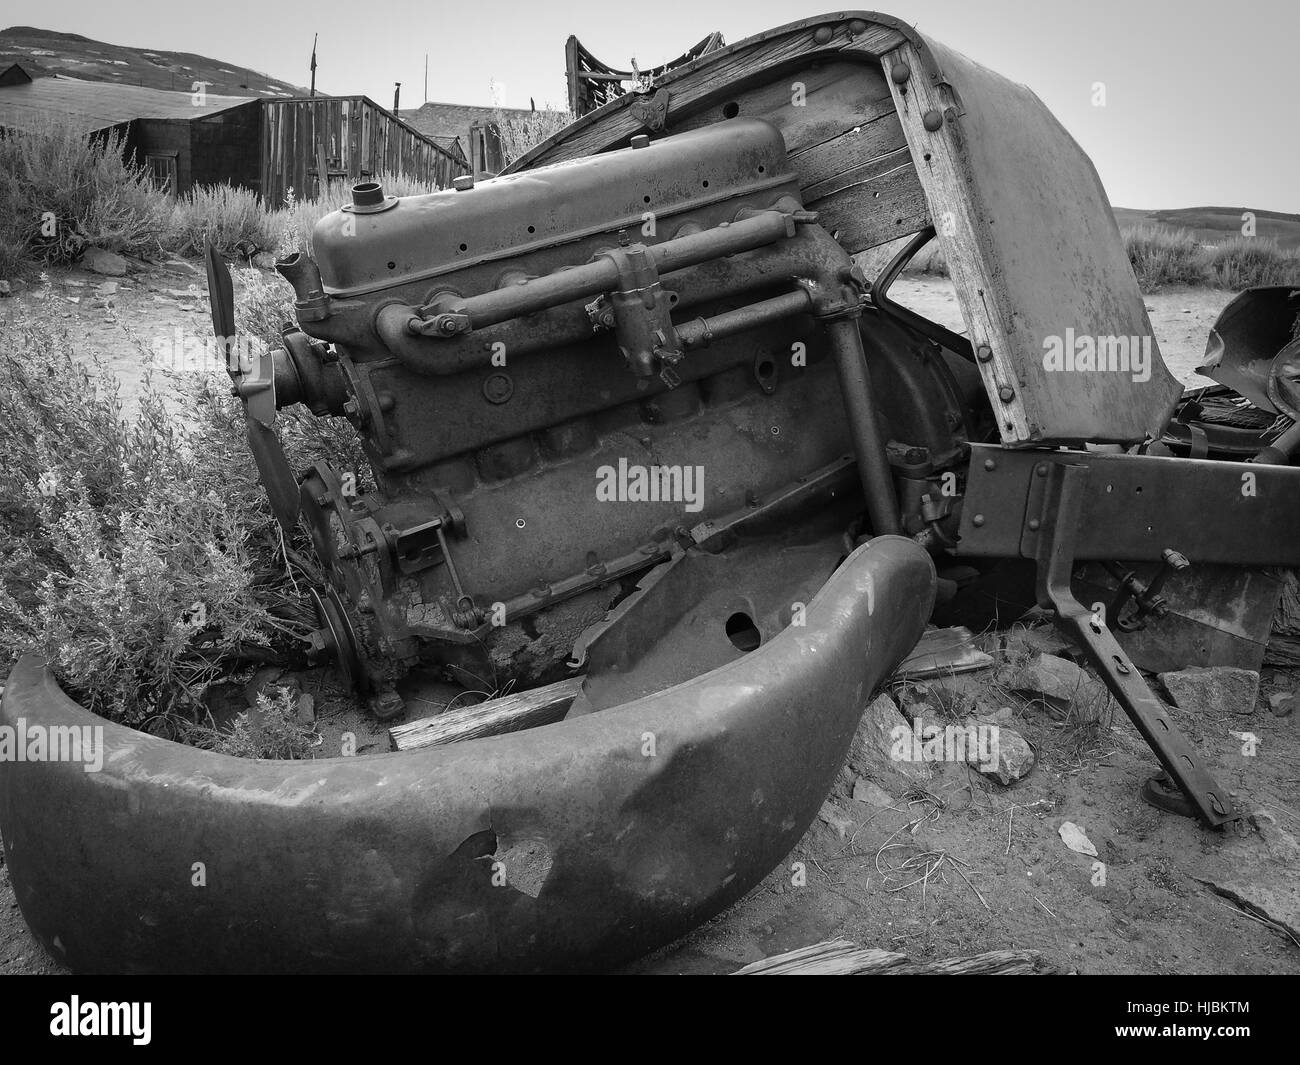 Abandonned engine's car,Bodie Ghost Town,California,USA. - Stock Image